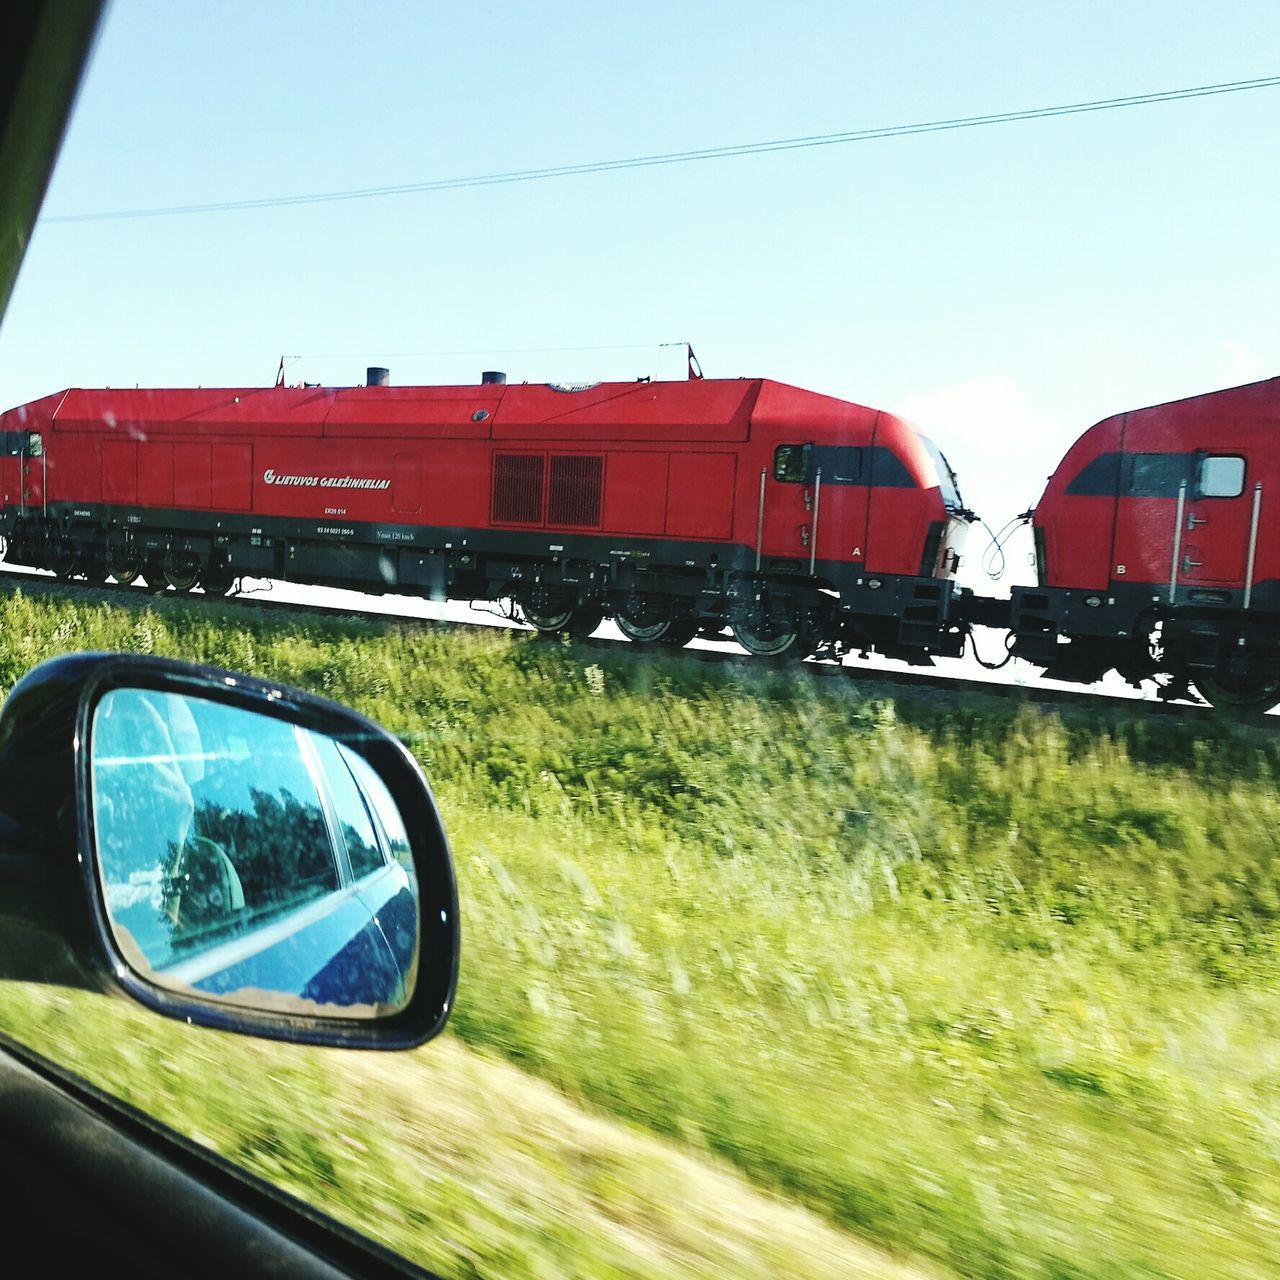 transportation, mode of transport, train - vehicle, rail transportation, grass, day, land vehicle, public transportation, no people, red, outdoors, railroad track, clear sky, nature, sky, locomotive